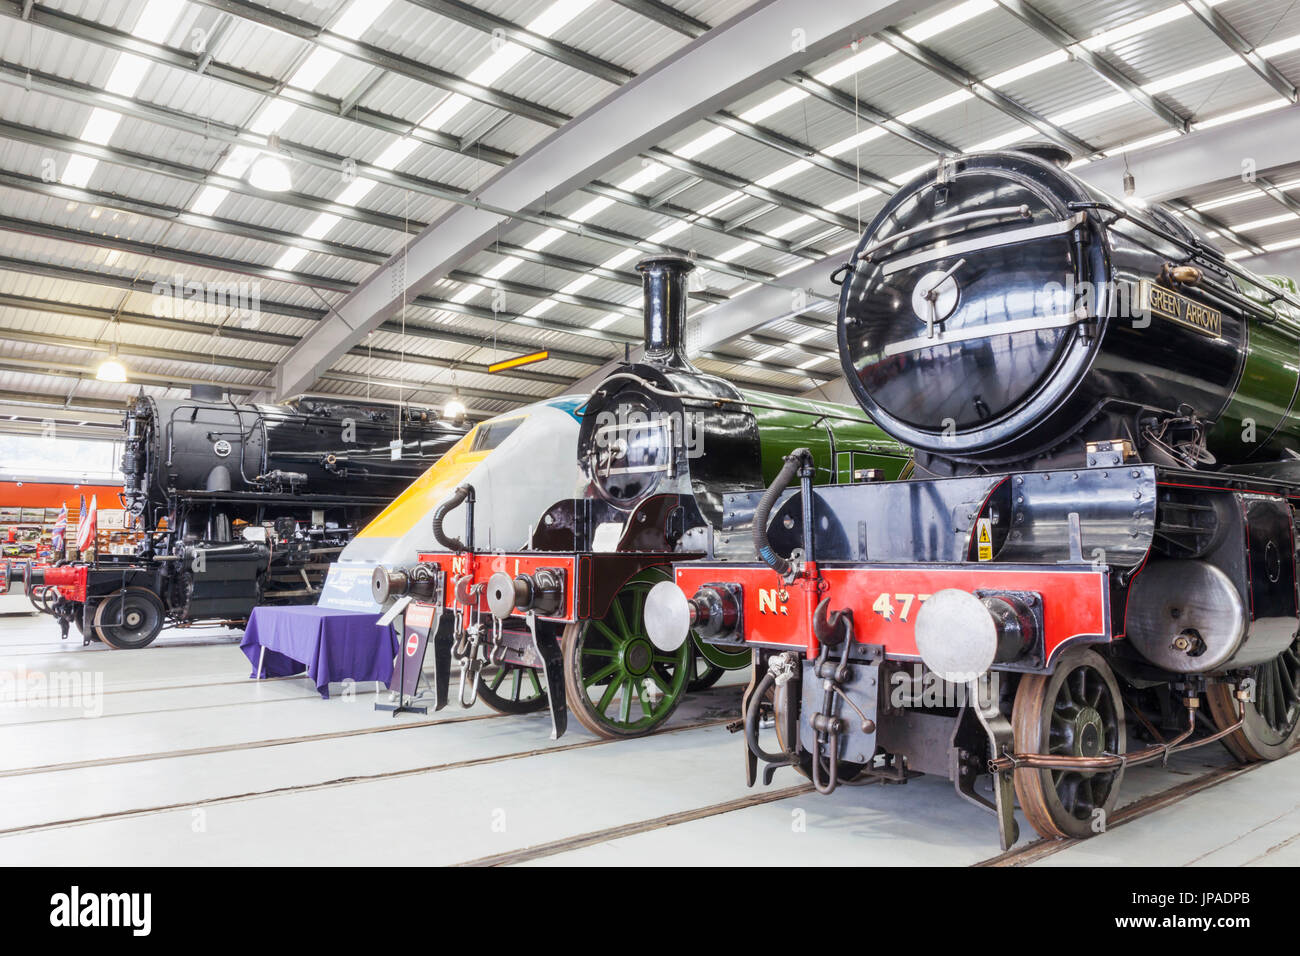 England, County Durham, Shildon, Locomotion National Railway Museum, Display of Historical Train Engines - Stock Image